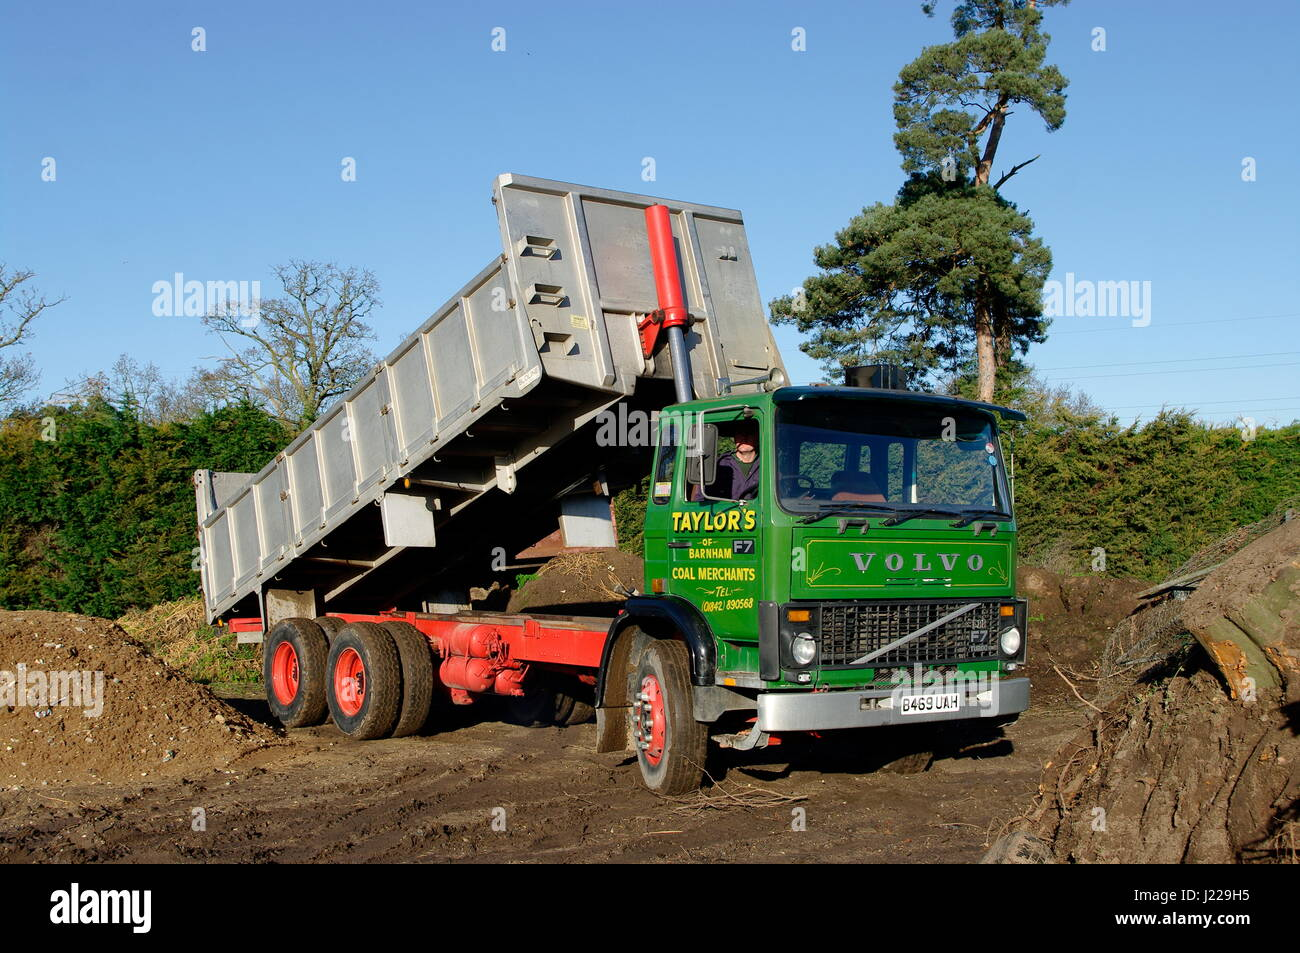 Haulage Tipper Stock Photos & Haulage Tipper Stock Images - Alamy